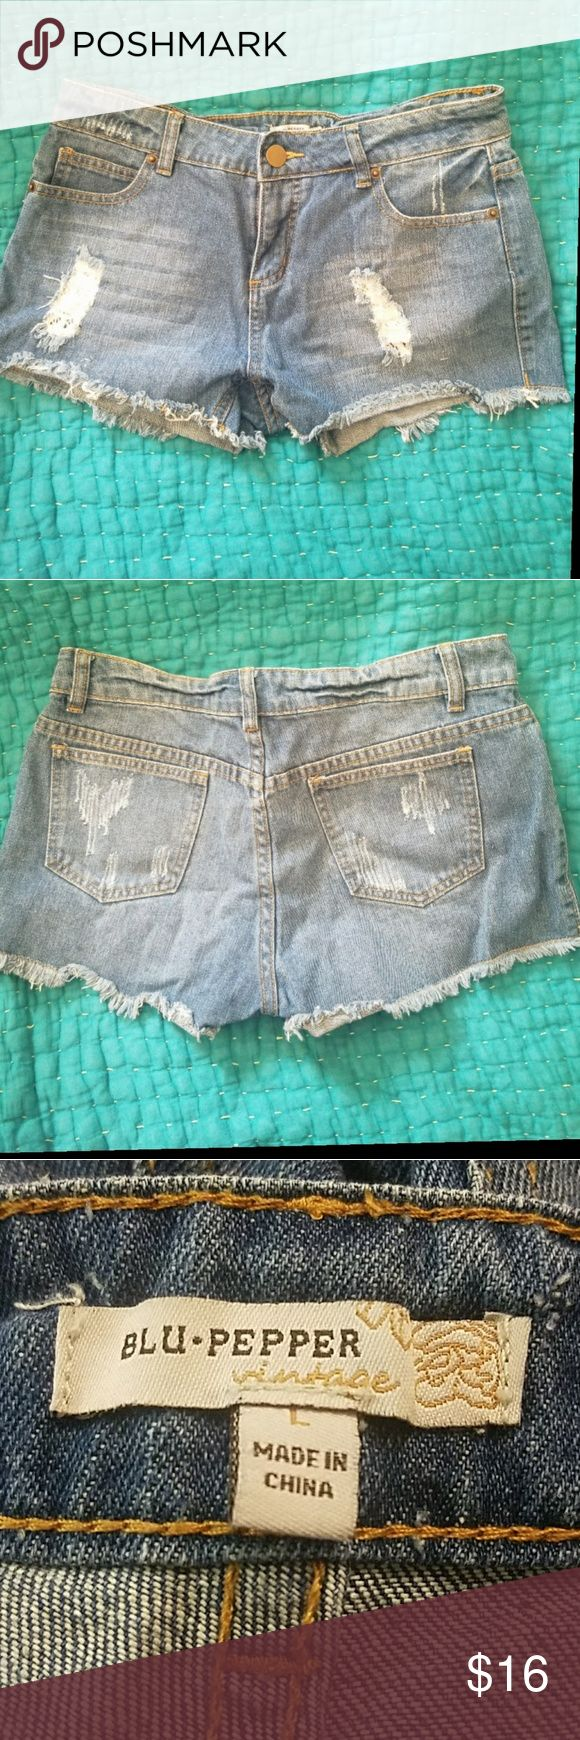 NEW LISTING Blu Pepper Distressed Lace Jean Shorts Cute distressed cut off style denim jean shorts from Blu Pepper. Tears in the front have white lace panels. Five pocket styling. High waisted. 100% cotton. Size large. Would fit a size 10-12. Waist 32 inches. Inseam 2.5 inches. Front rise 9.5 inches. Blu Pepper Shorts Jean Shorts